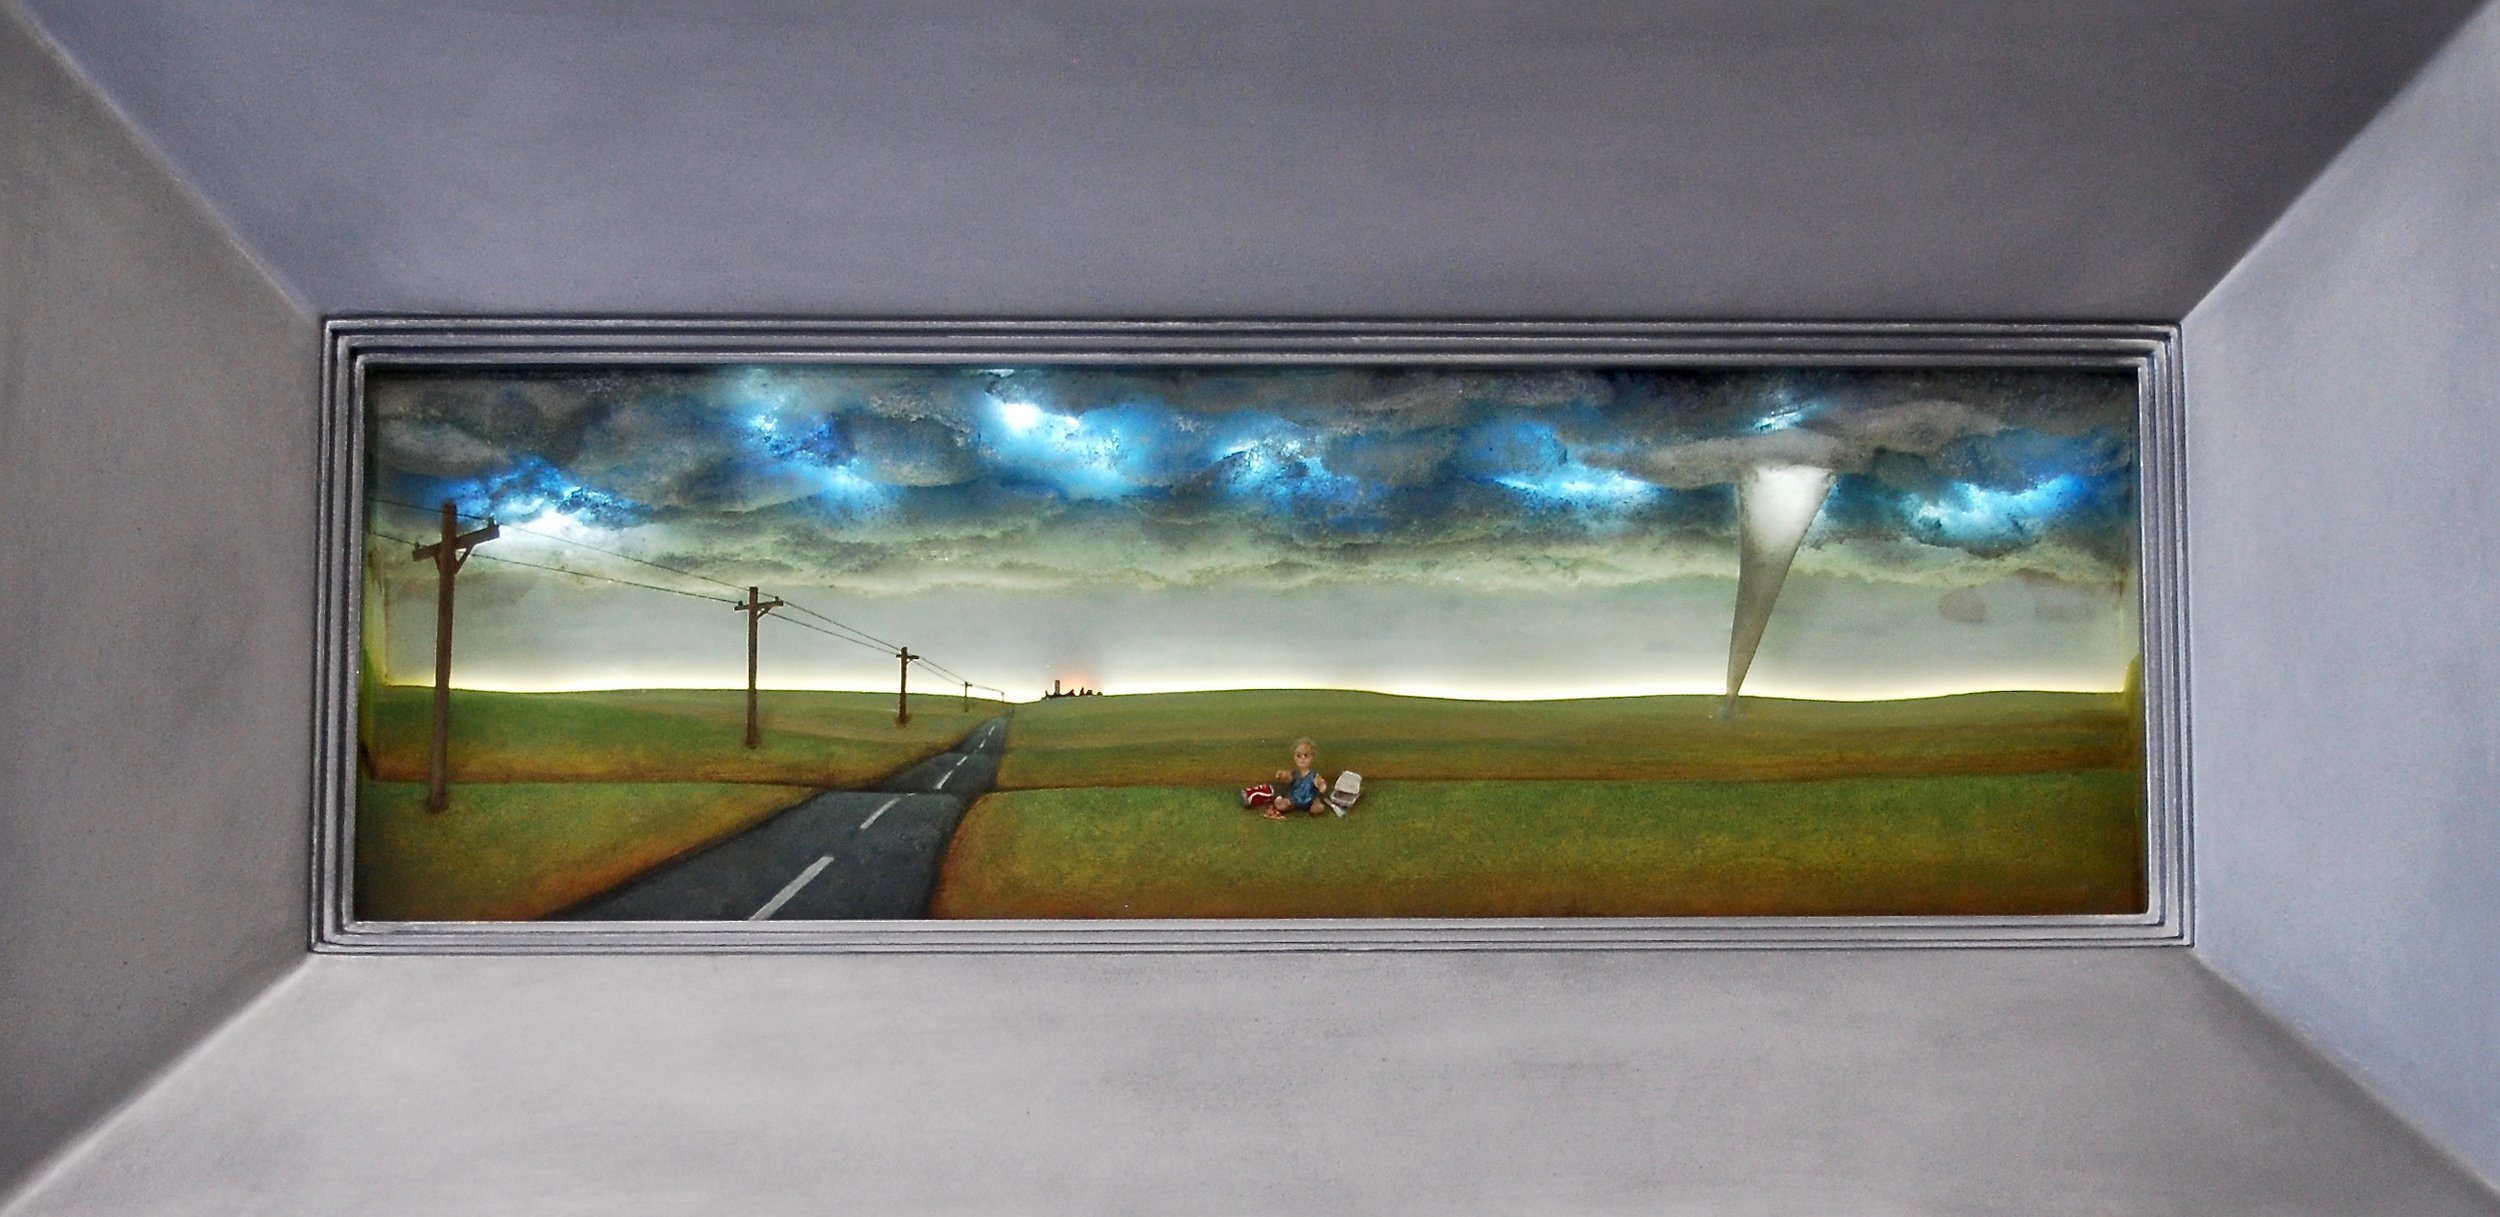 """Thomas Coffin - Last Trip to the Dairy Queen, 16""""h x 32""""w x 5 3/4""""d, mixed media 3-d diorama encased in acrylic resin, wood frame"""